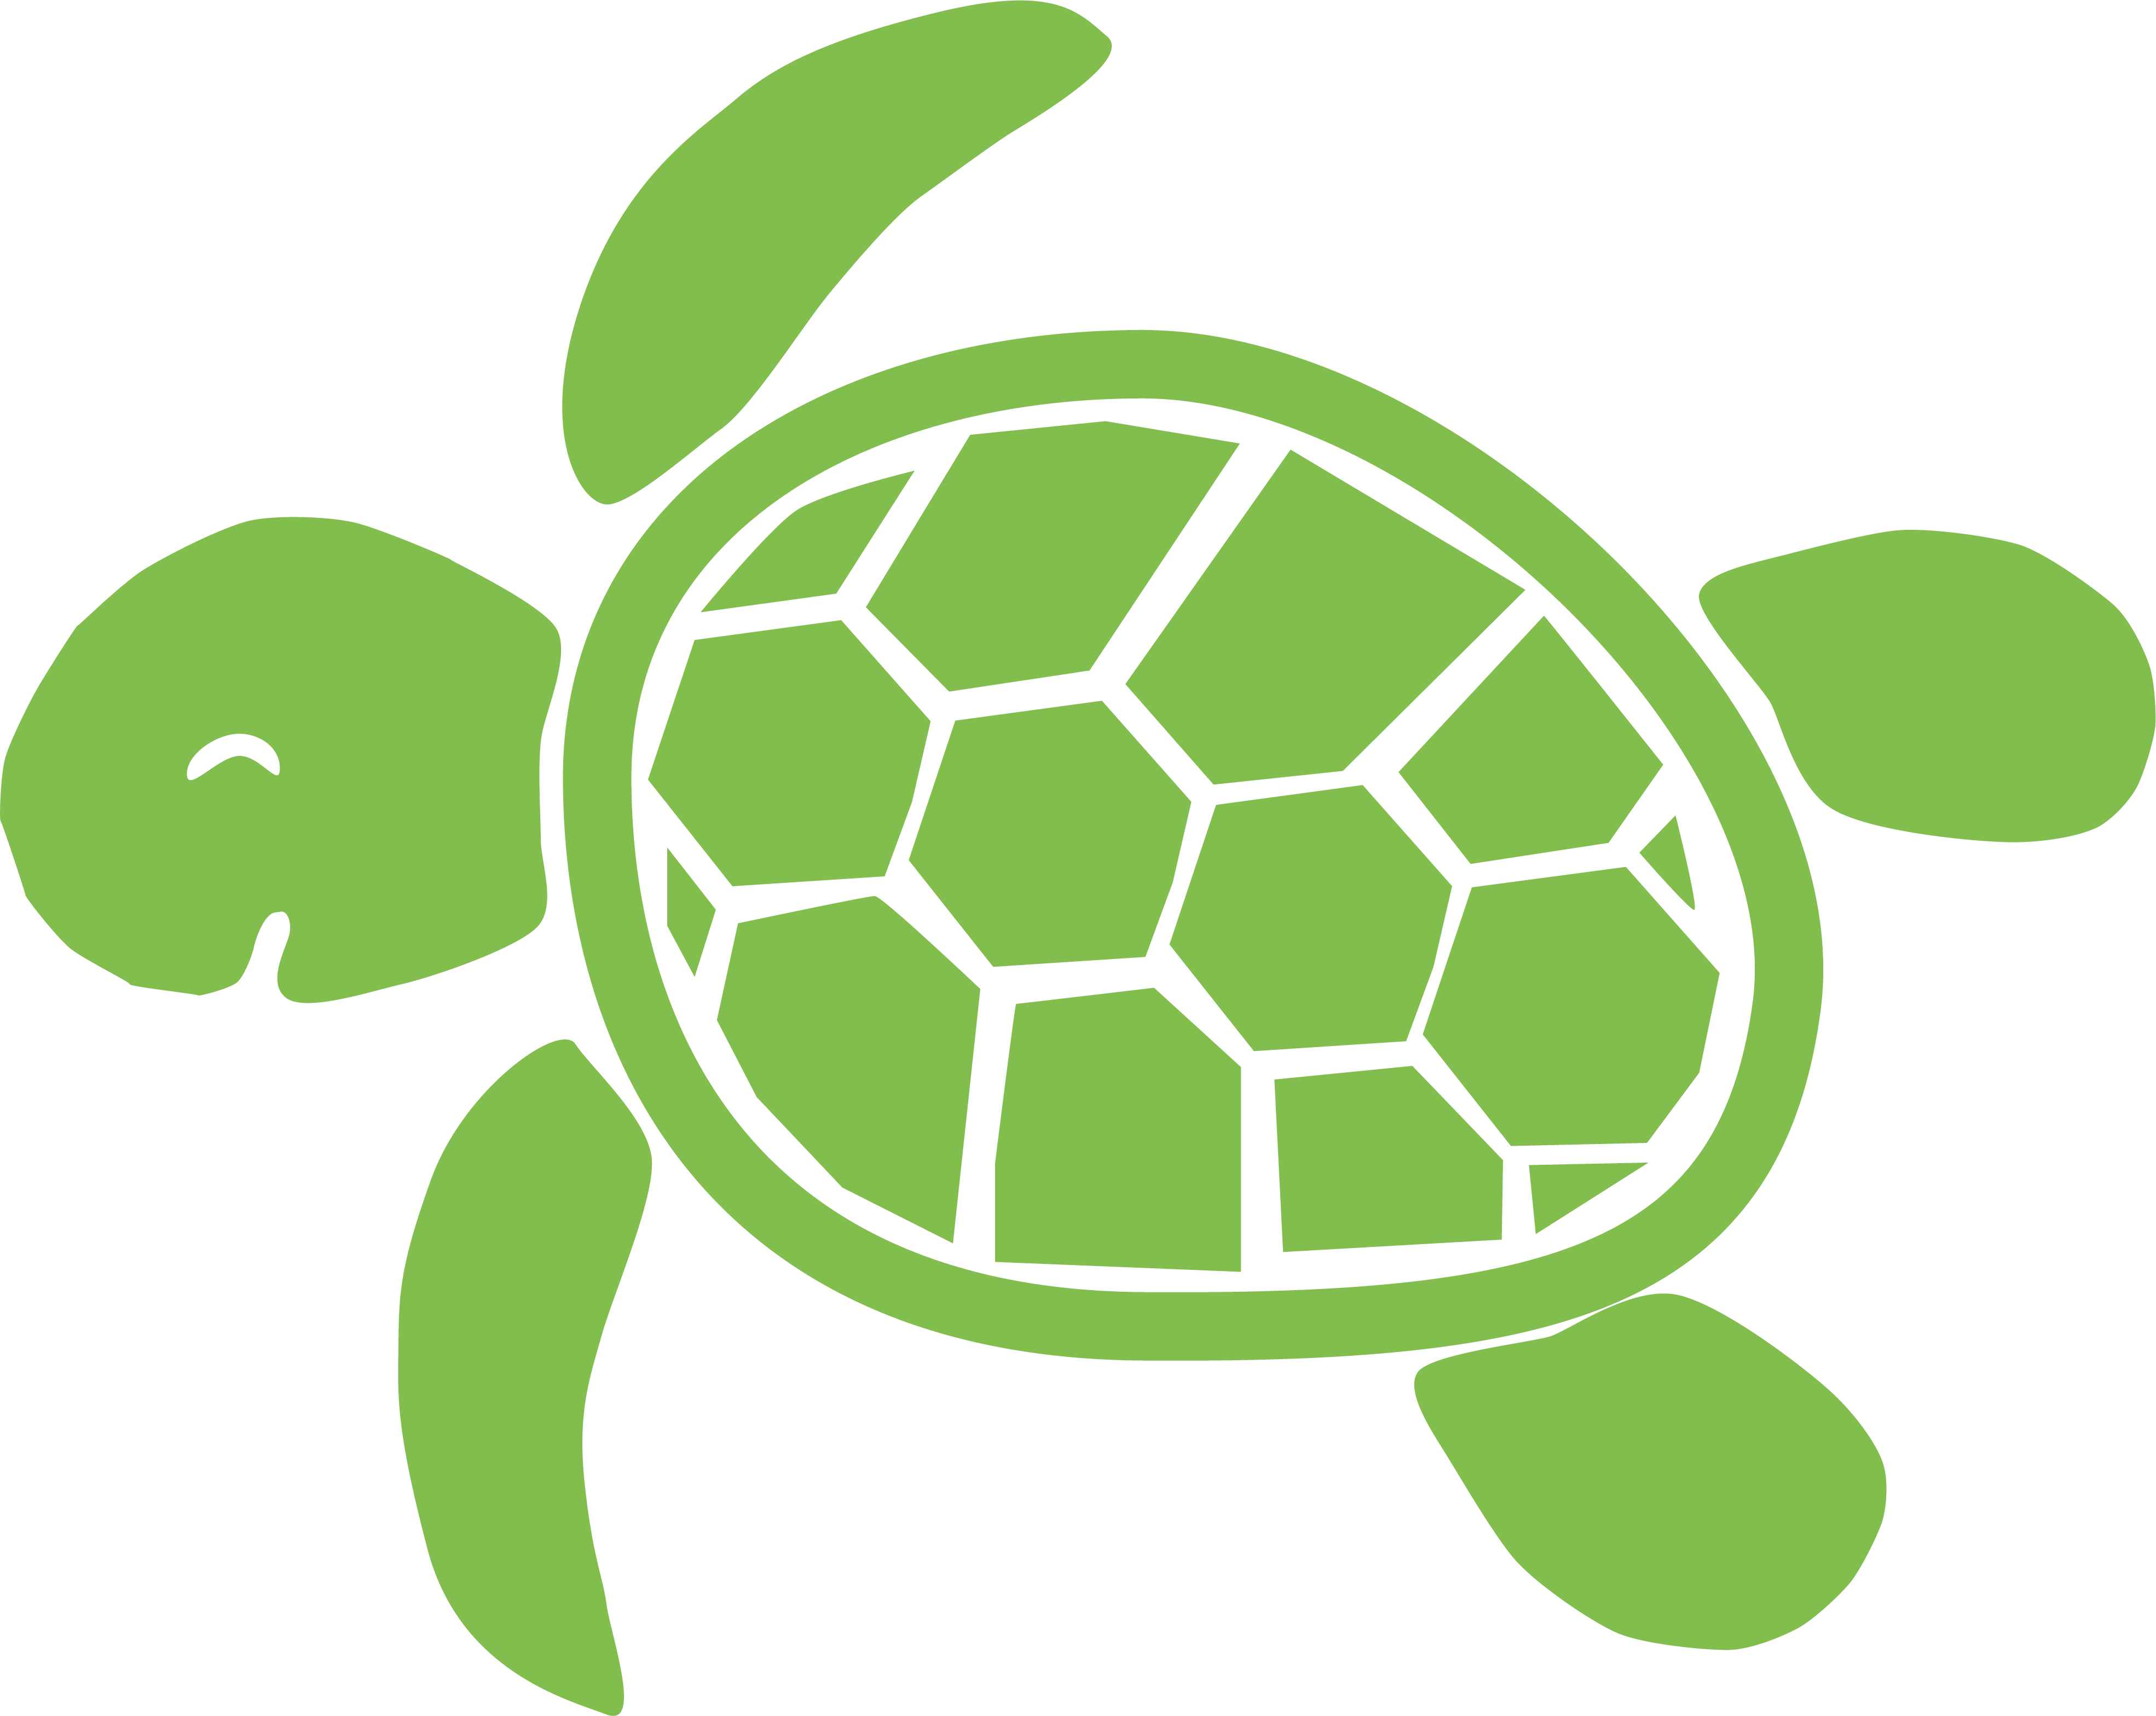 Clipart turtle tutle. Svg for cricut d